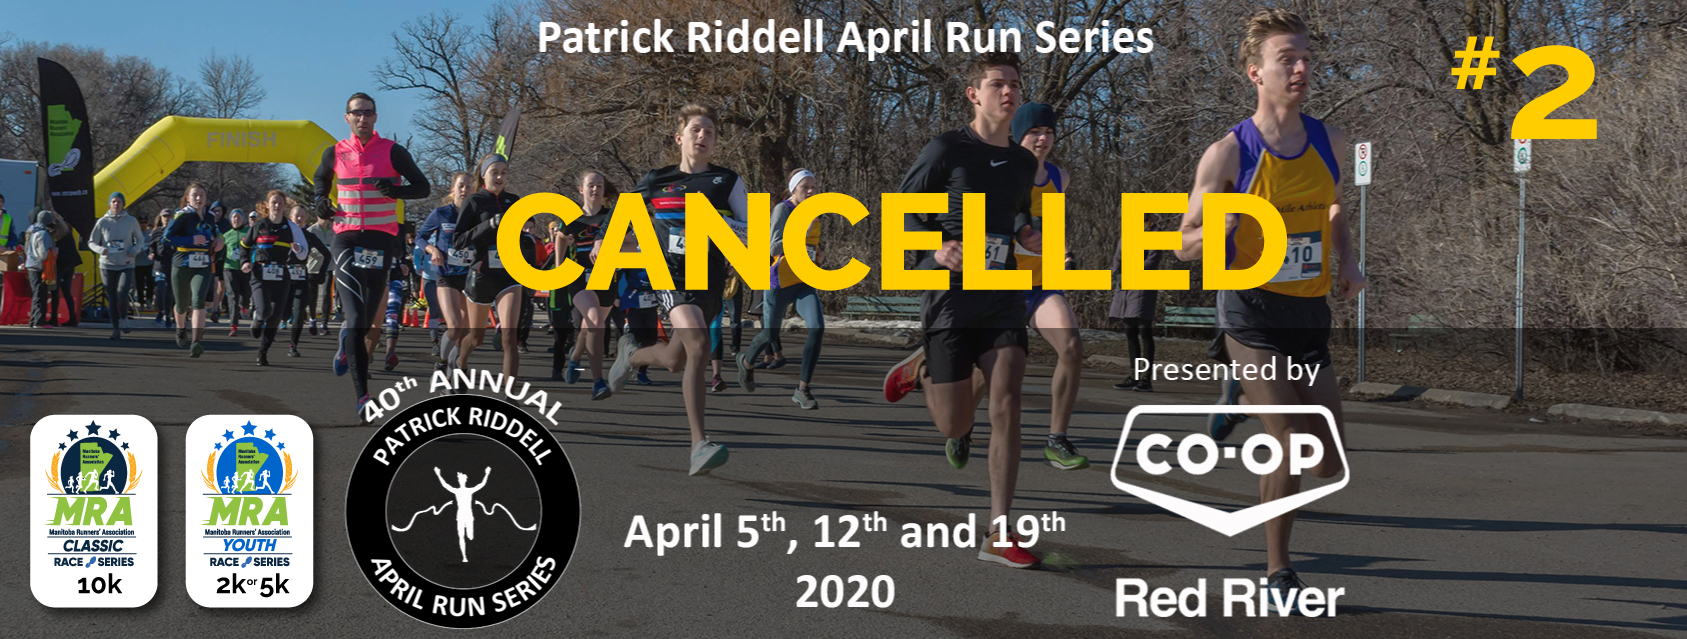 Patrick Riddell April Run Series #2 - Presented by Red River Co-op  **CANCELLED**